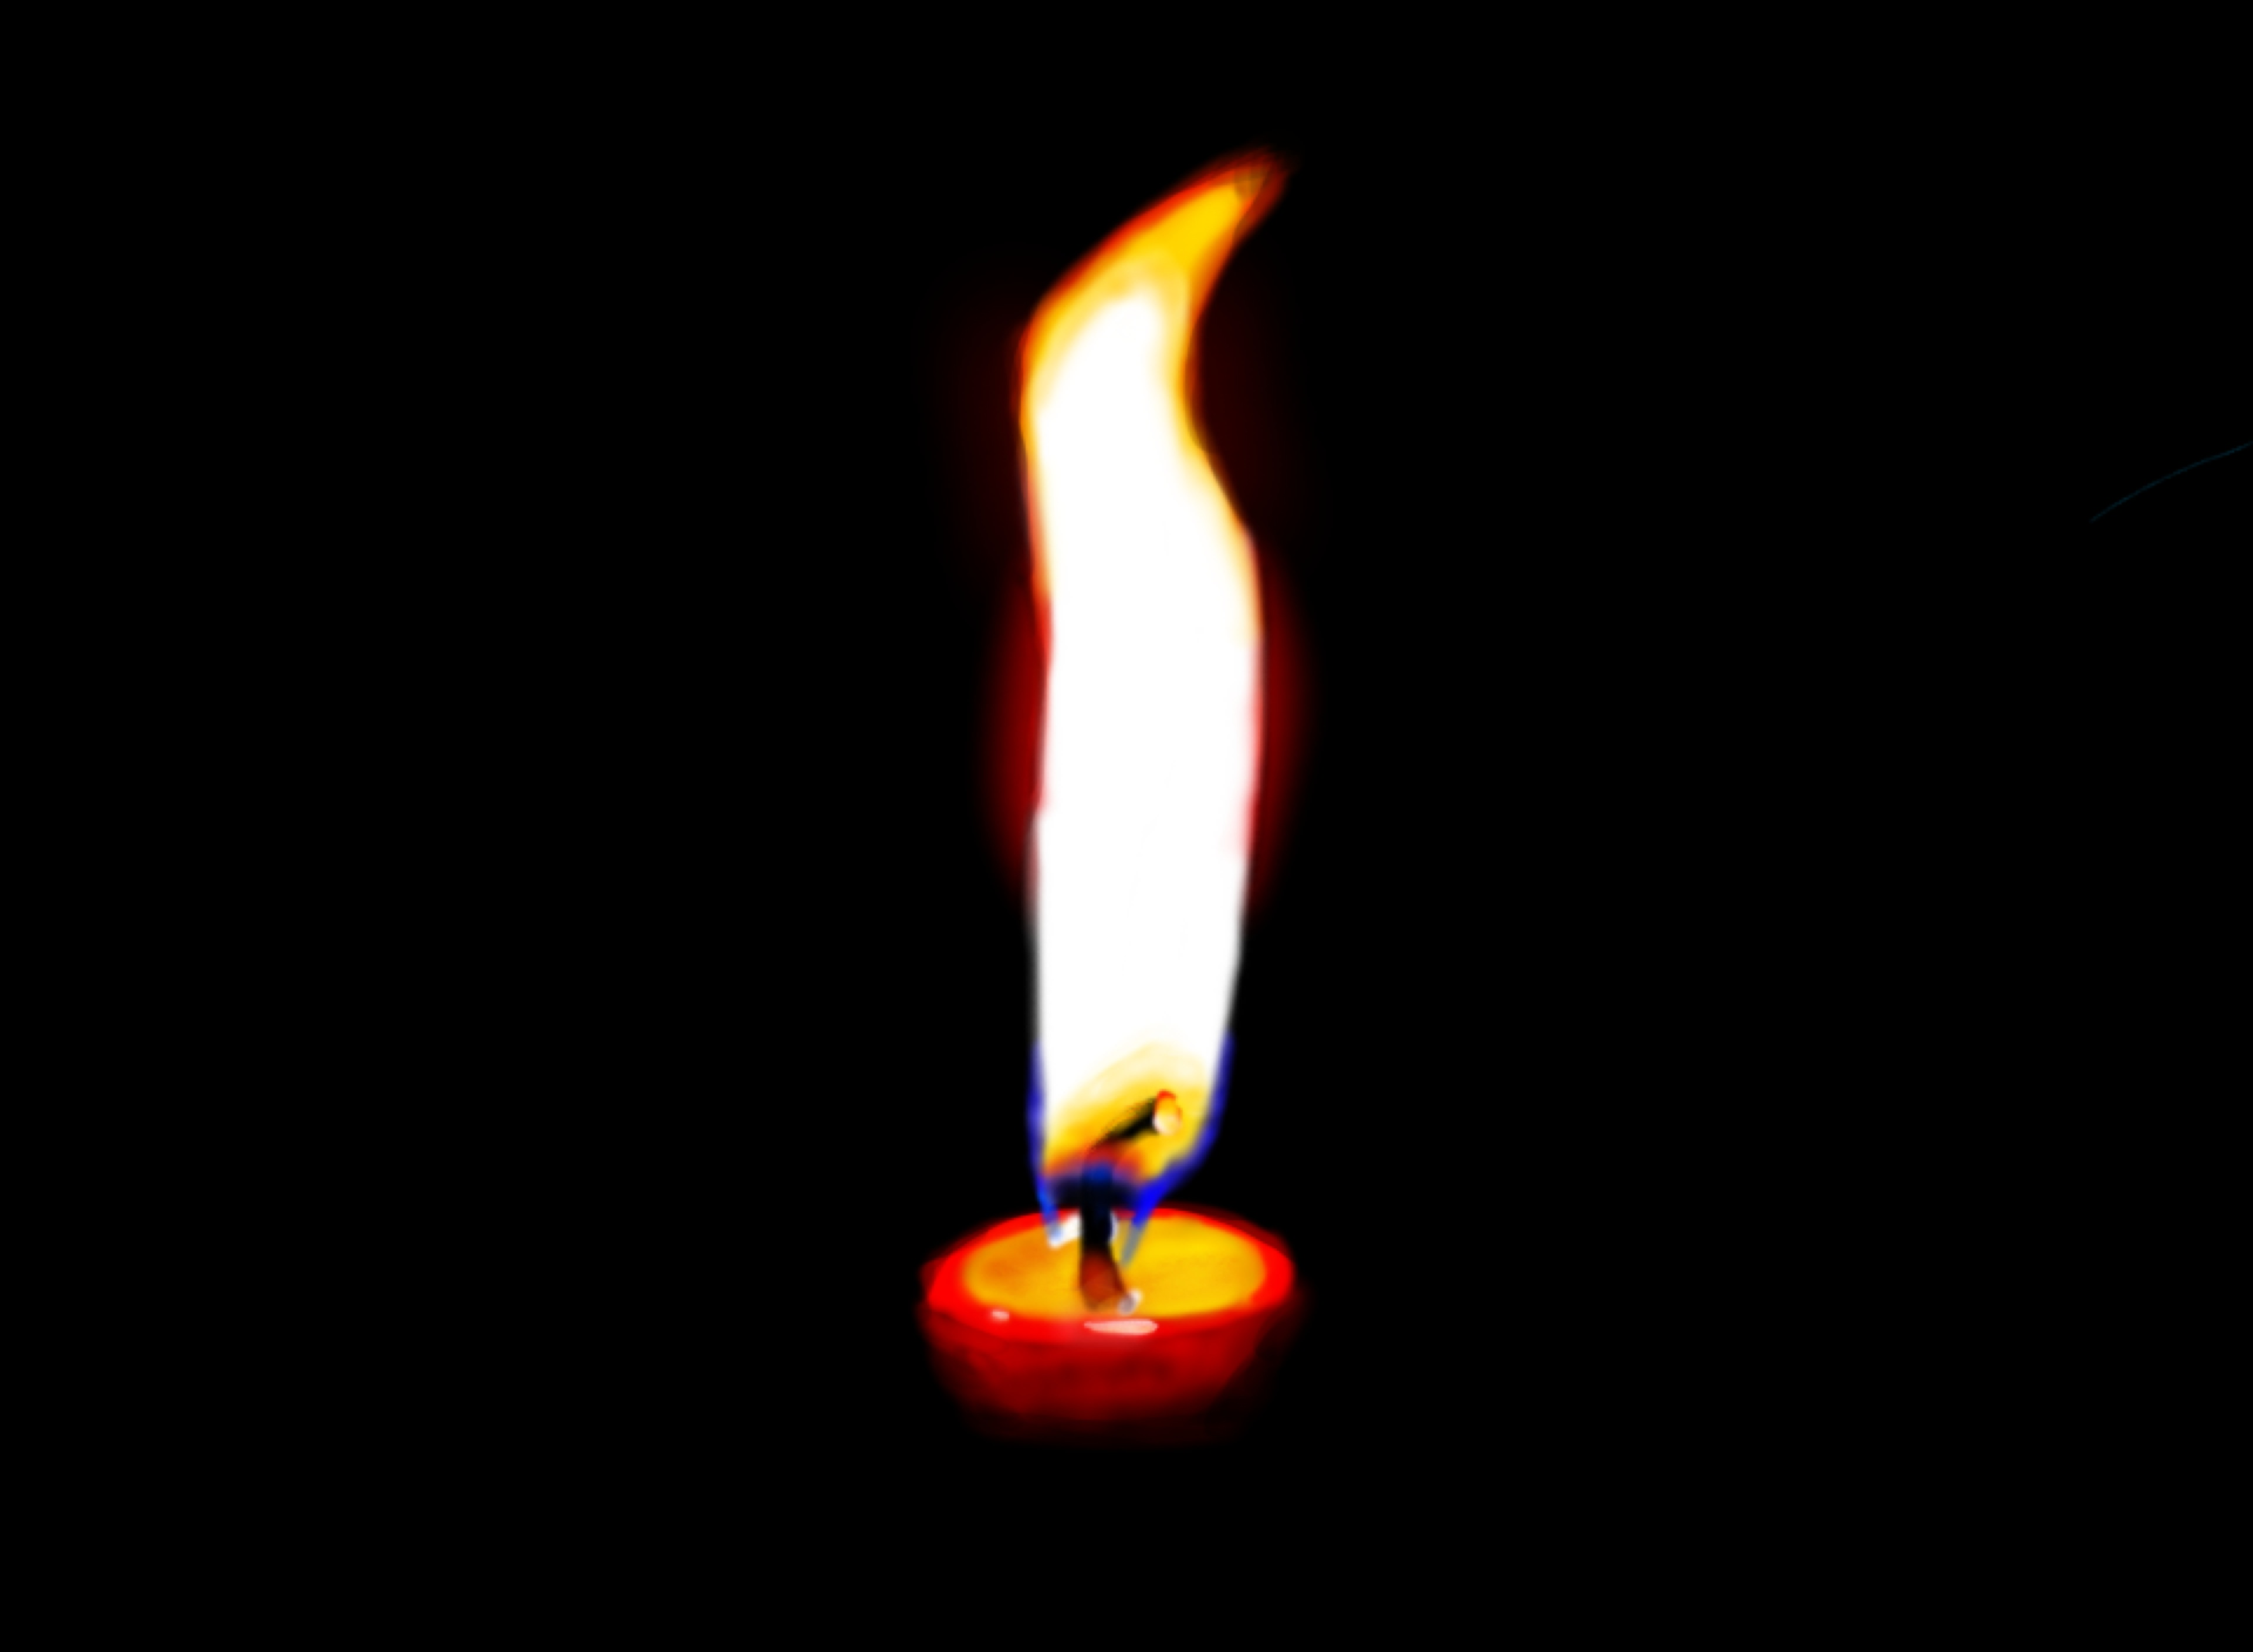 Pin Drawn Fire Candle Flame #10 - Candle Flame PNG HD - Burning Candle PNG HD